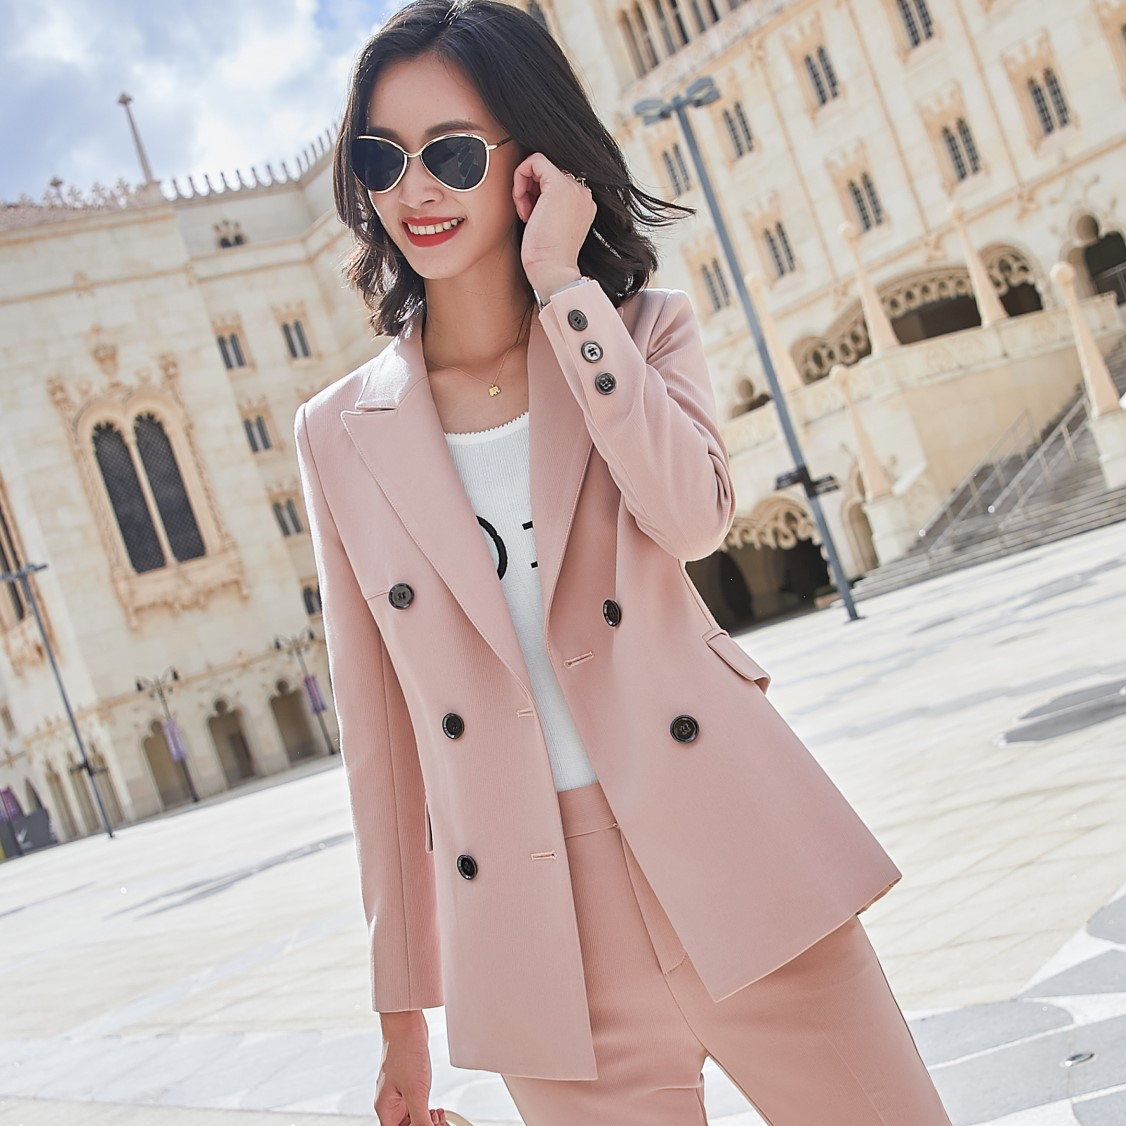 Plus size women high-quality professional women's pants Autumn and winter double-breasted ladies jacket suit Office work clothes